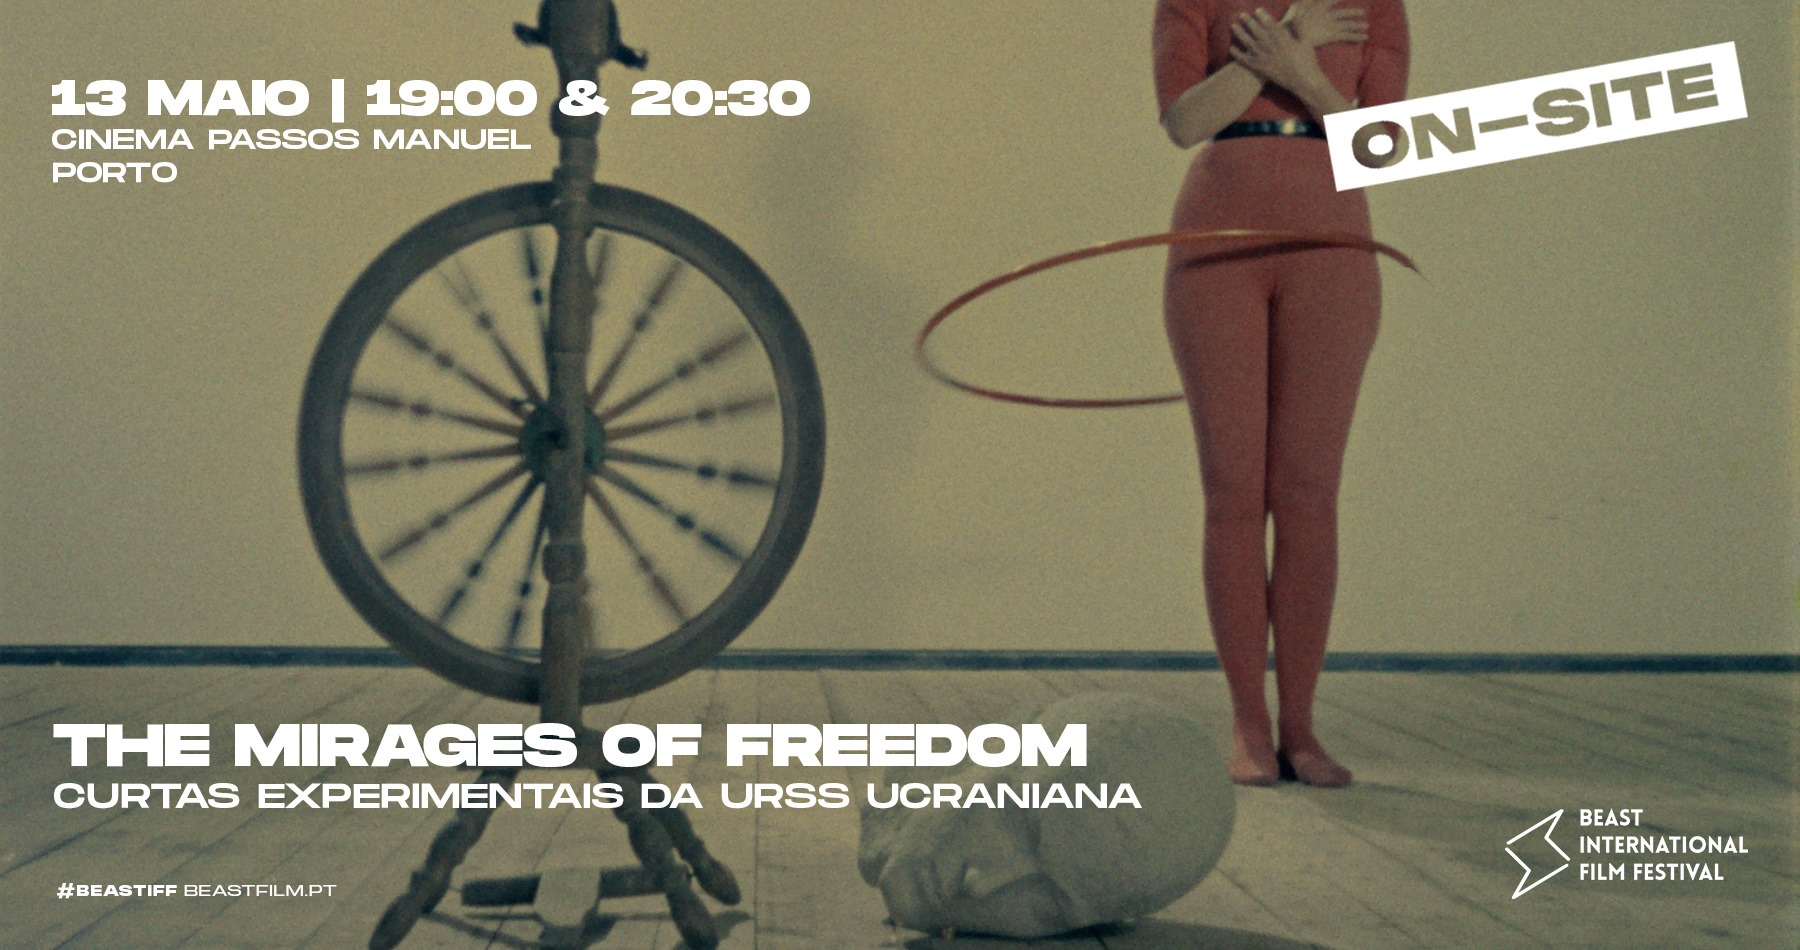 BEAST IFF ON-SITE #7 e #8 | The Mirages of Freedom